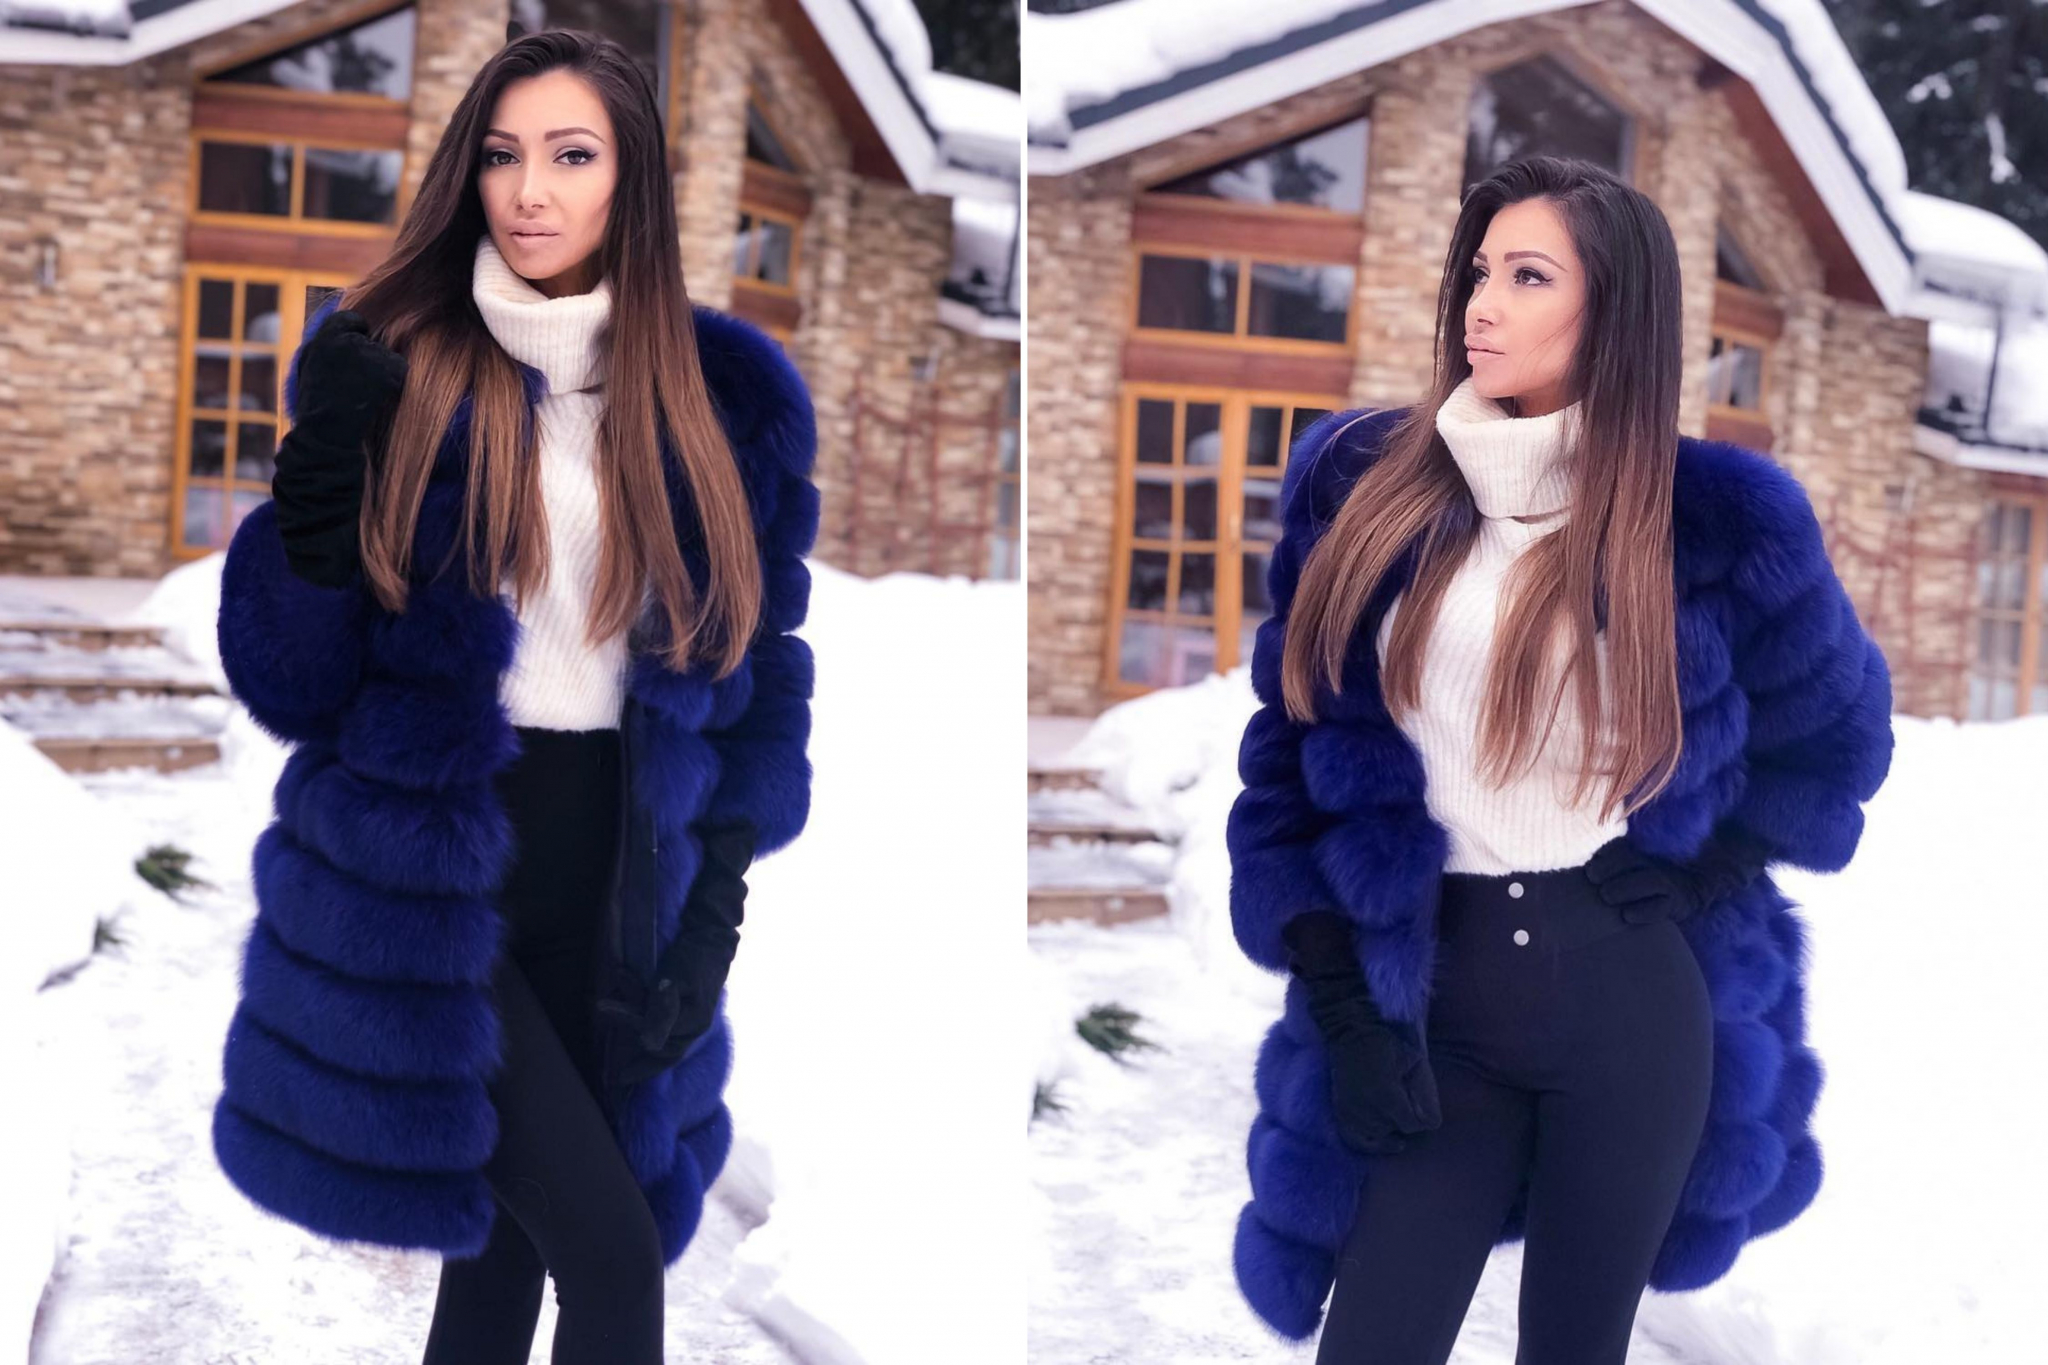 Julia Kashirova with winter long haircut near the house